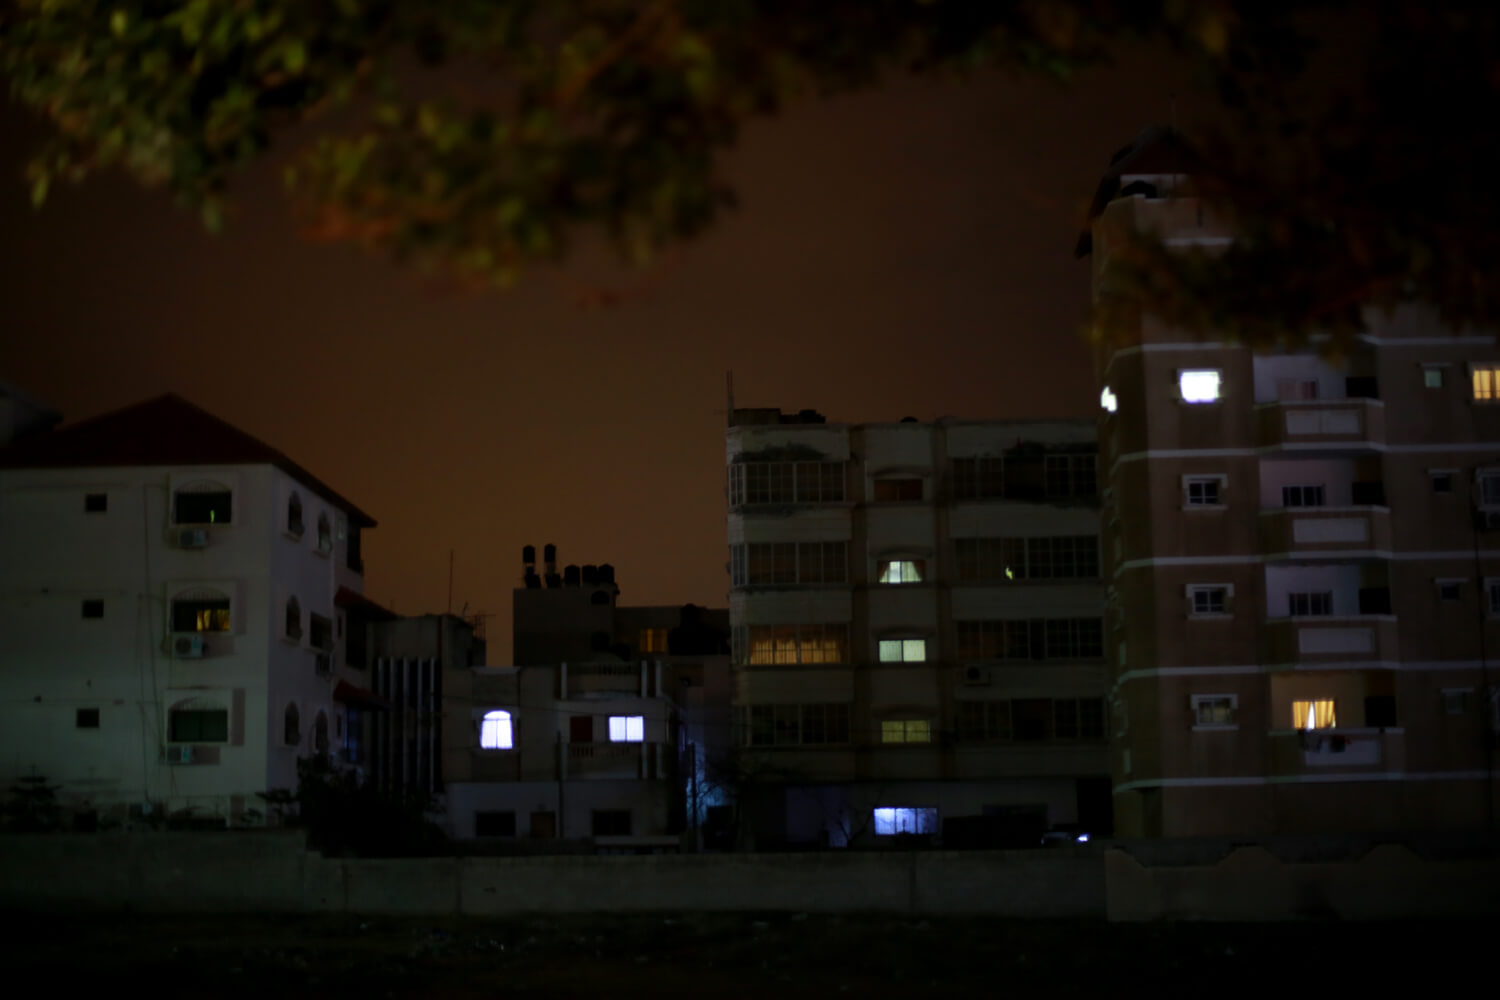 Apartments lit by generators during a power outage. (Photo: Mohammed Asad)